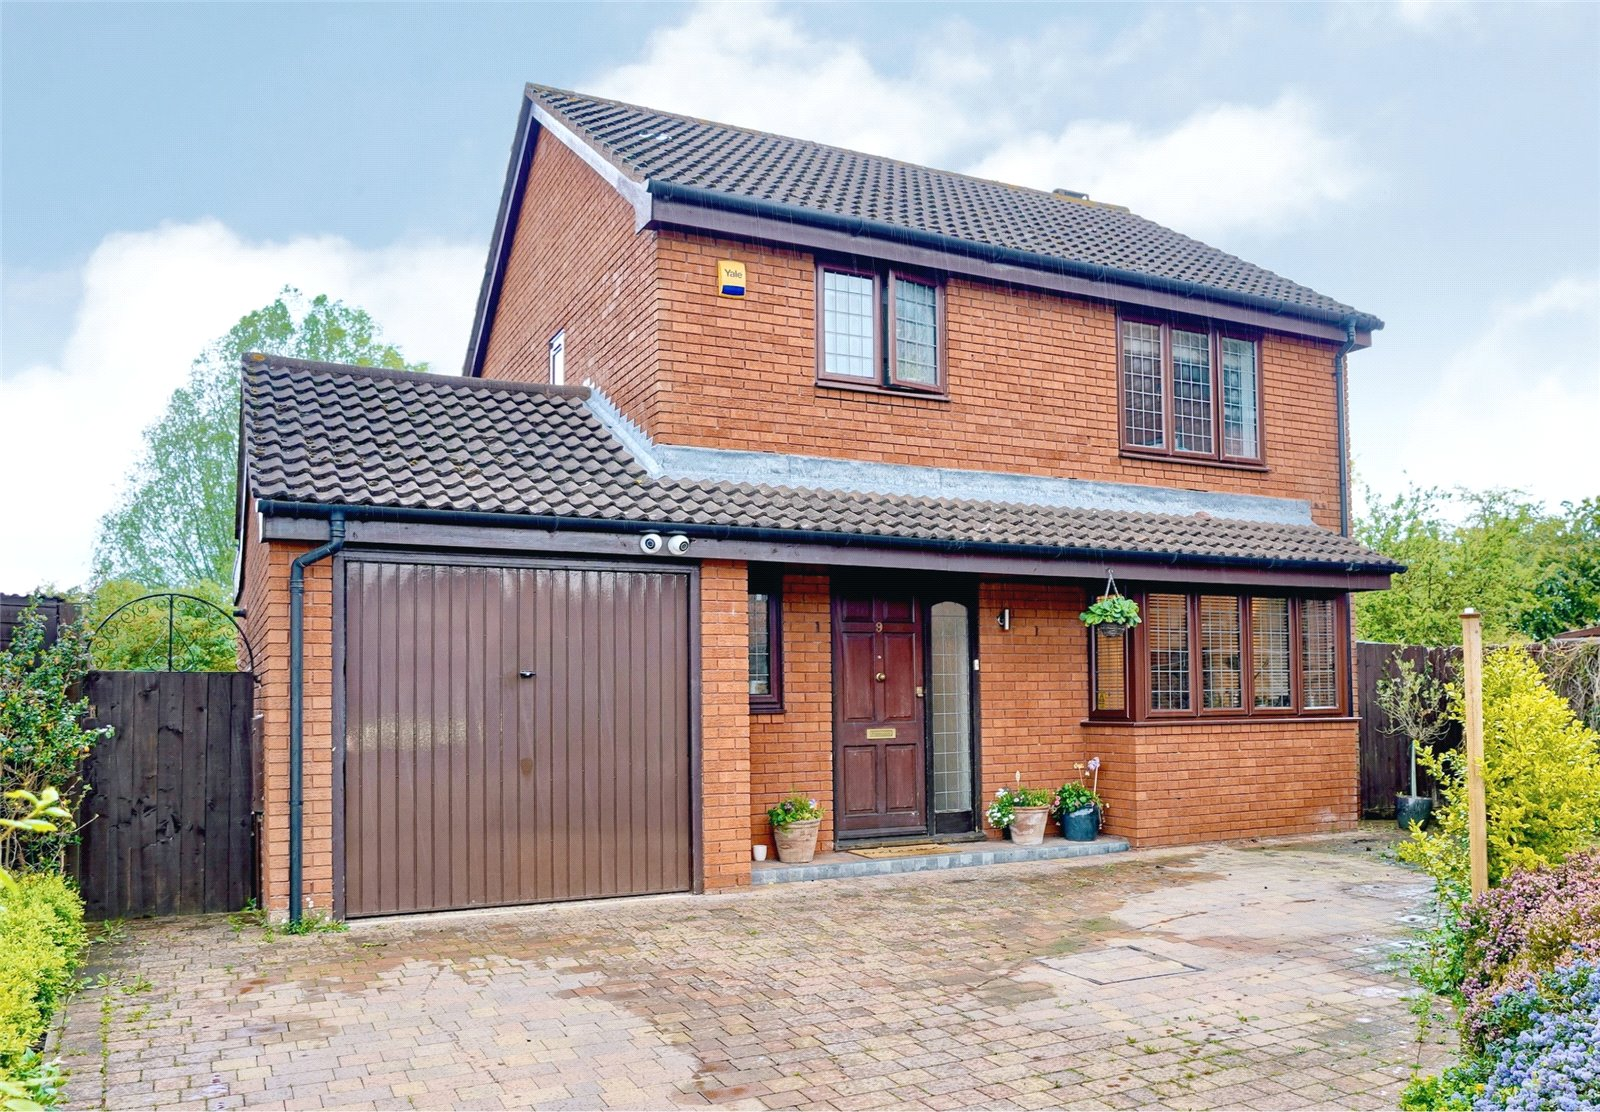 3 bed house for sale in Osier Court, Eaton Ford - Property Image 1